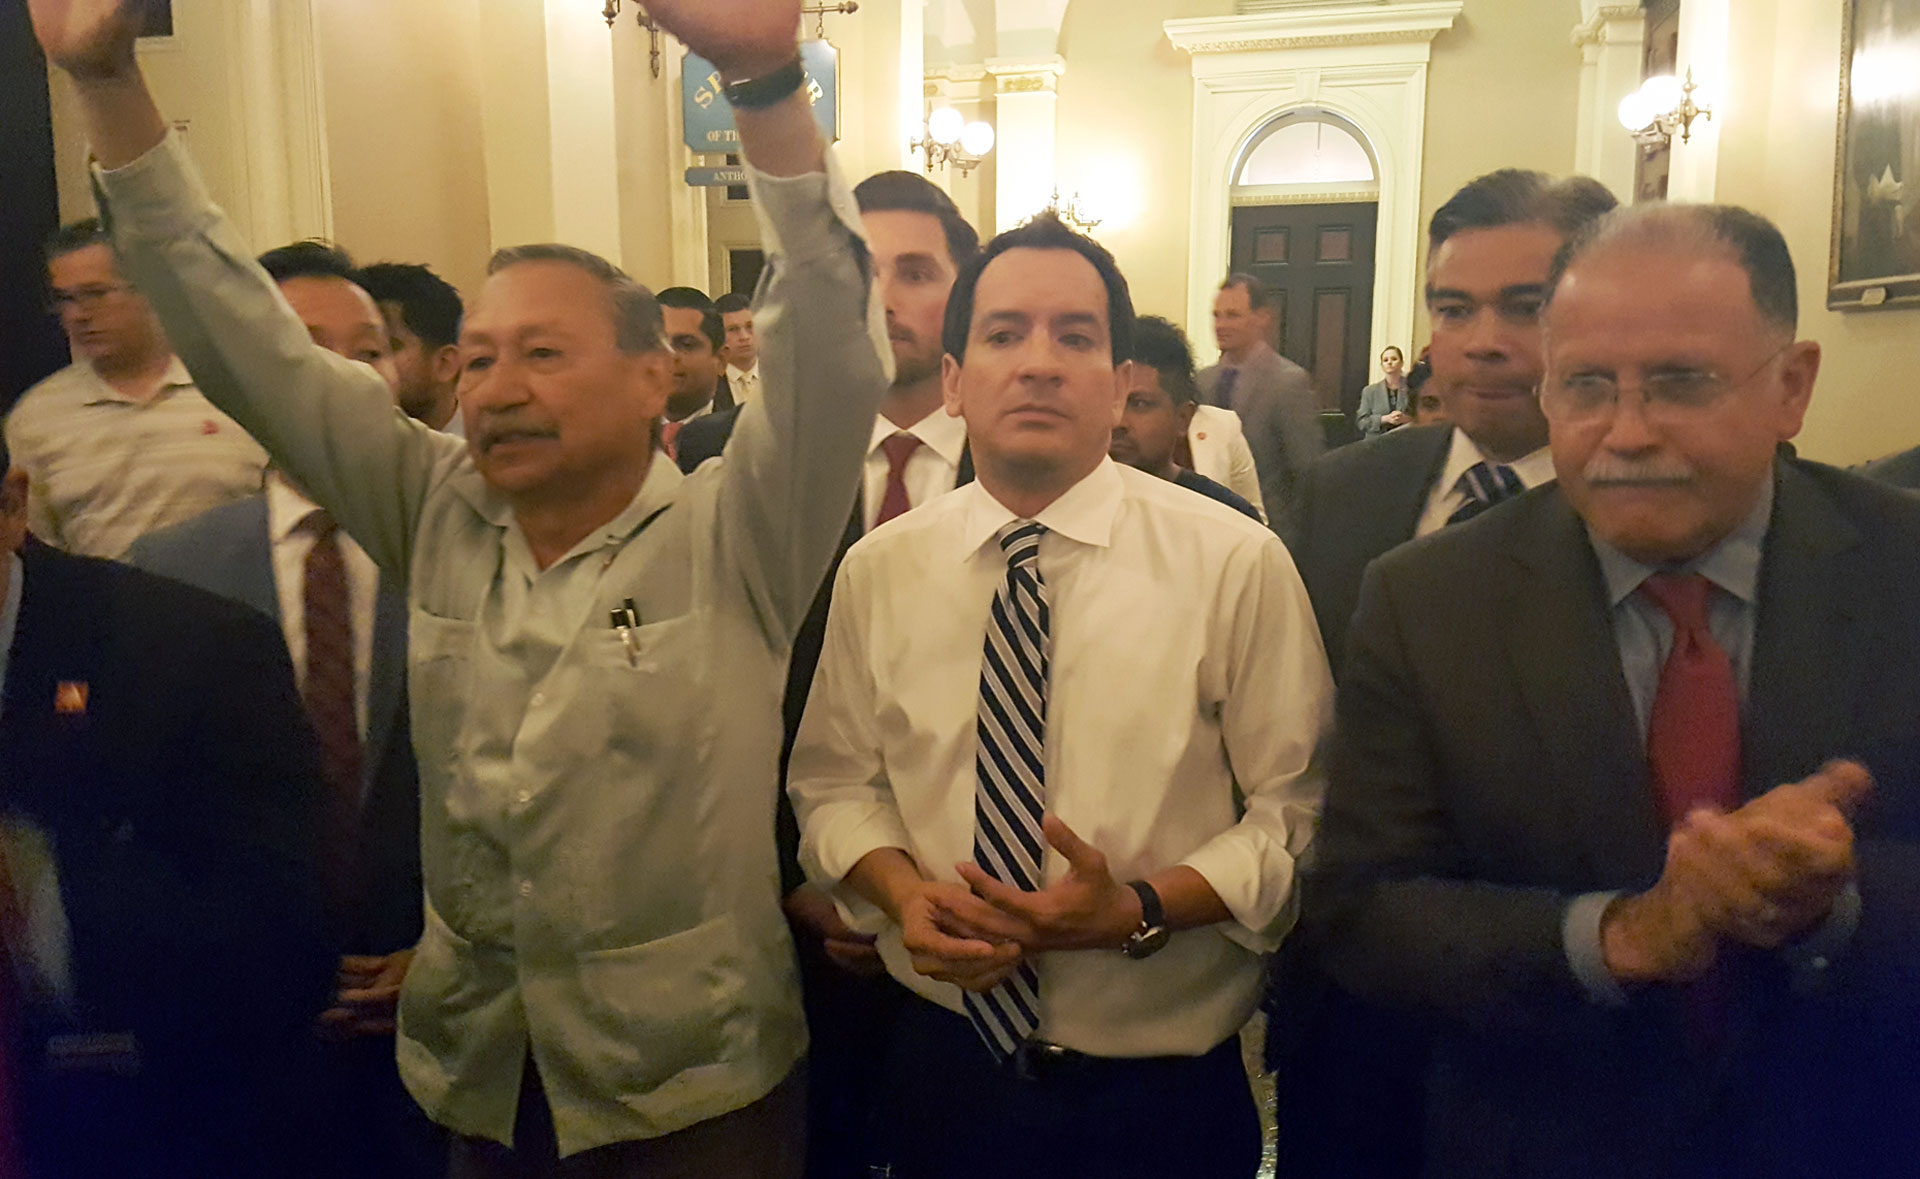 United Farmworkers President Arturo Rodriguez (L, arms raised) and Assembly Speaker Anthony Rendon (C) emerge after meeting about AB 1066 on Thursday, August 25, 2016.